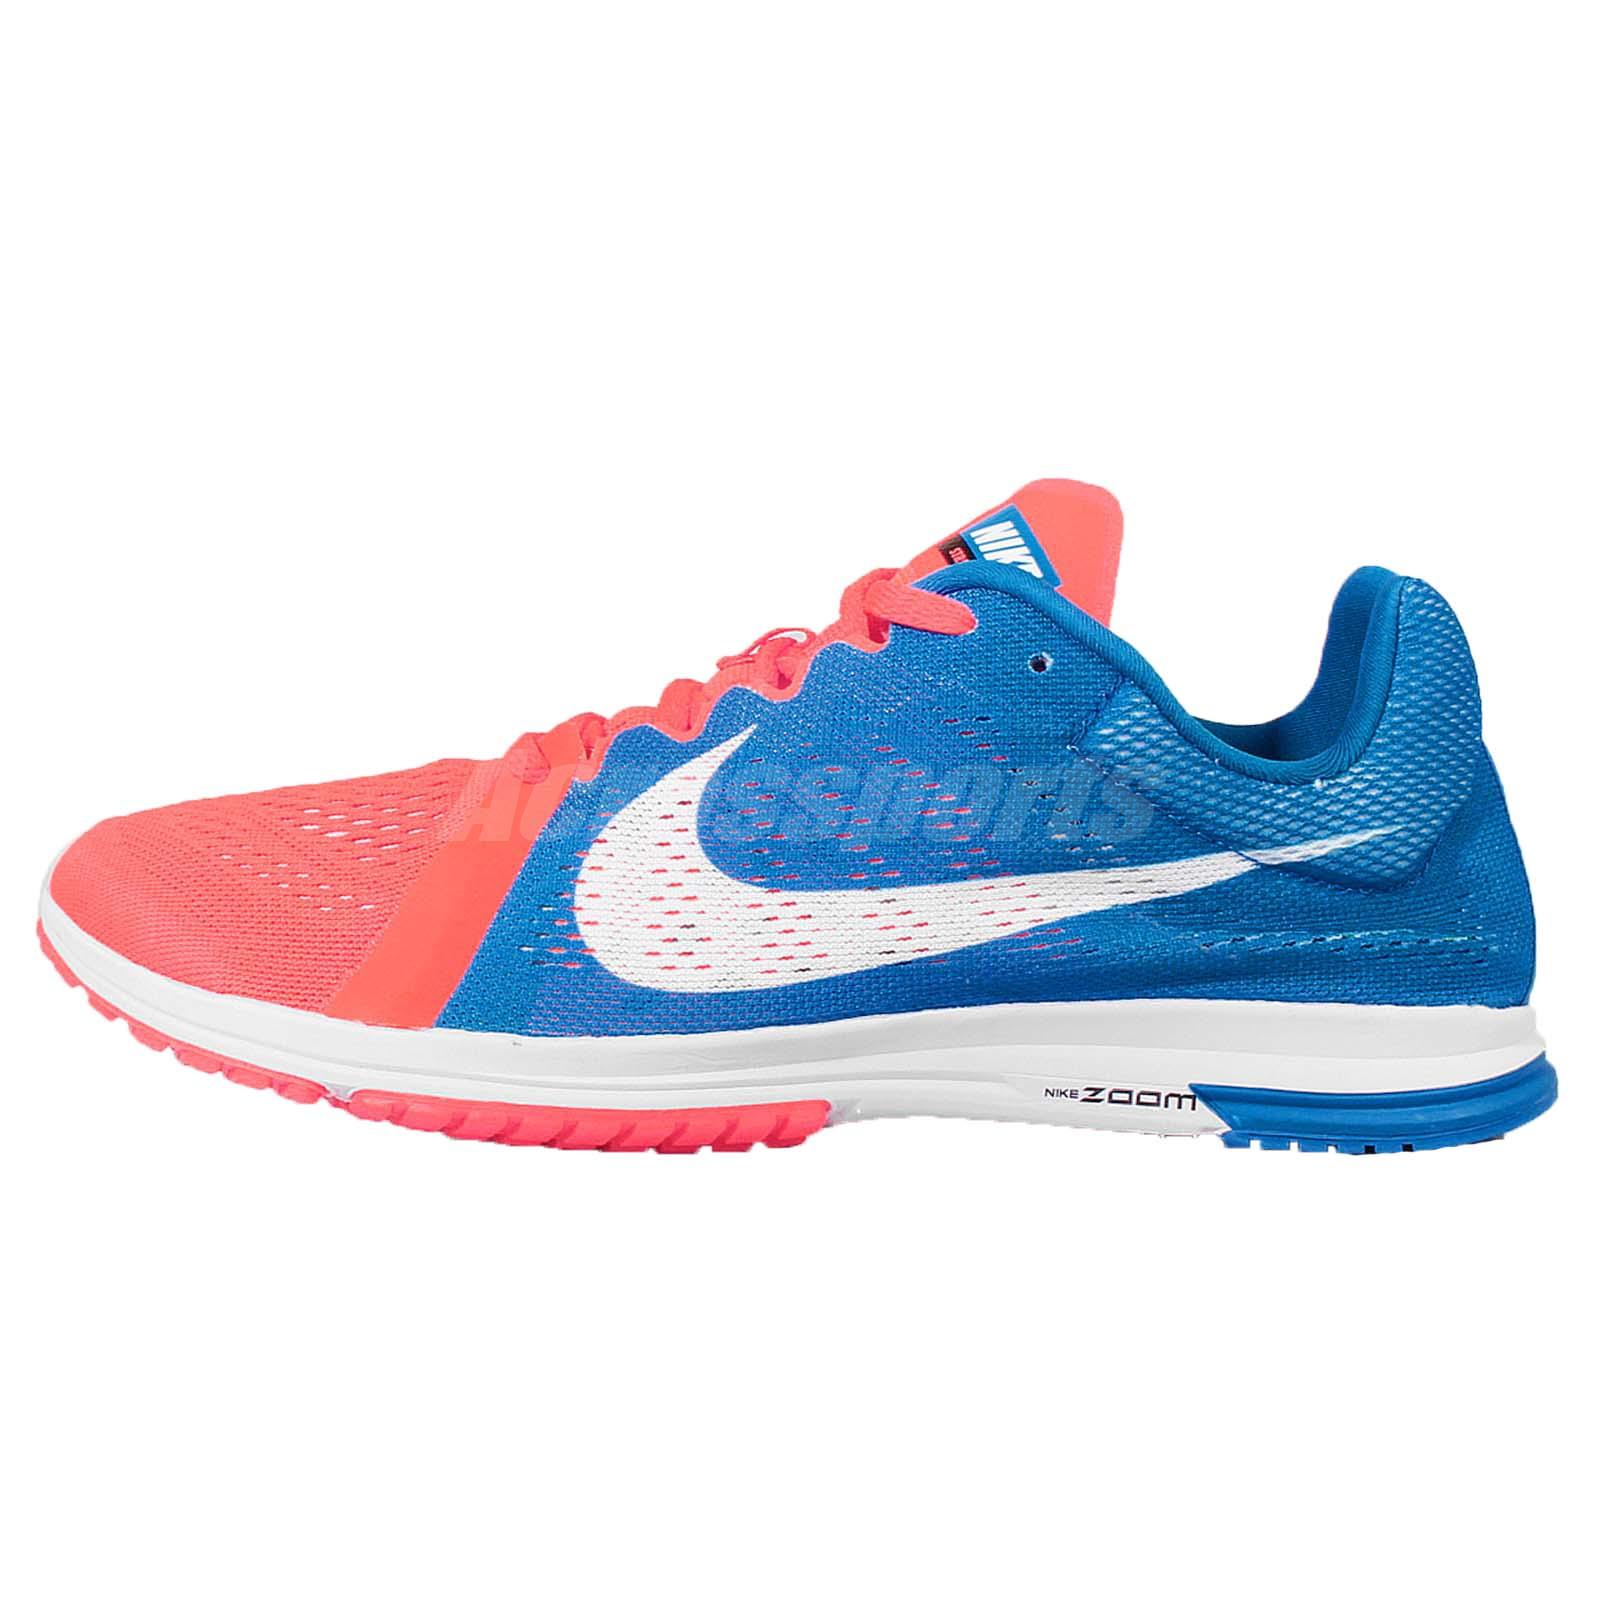 8868a2ff9fbe0 Acquista nike racing zoom - OFF79% sconti